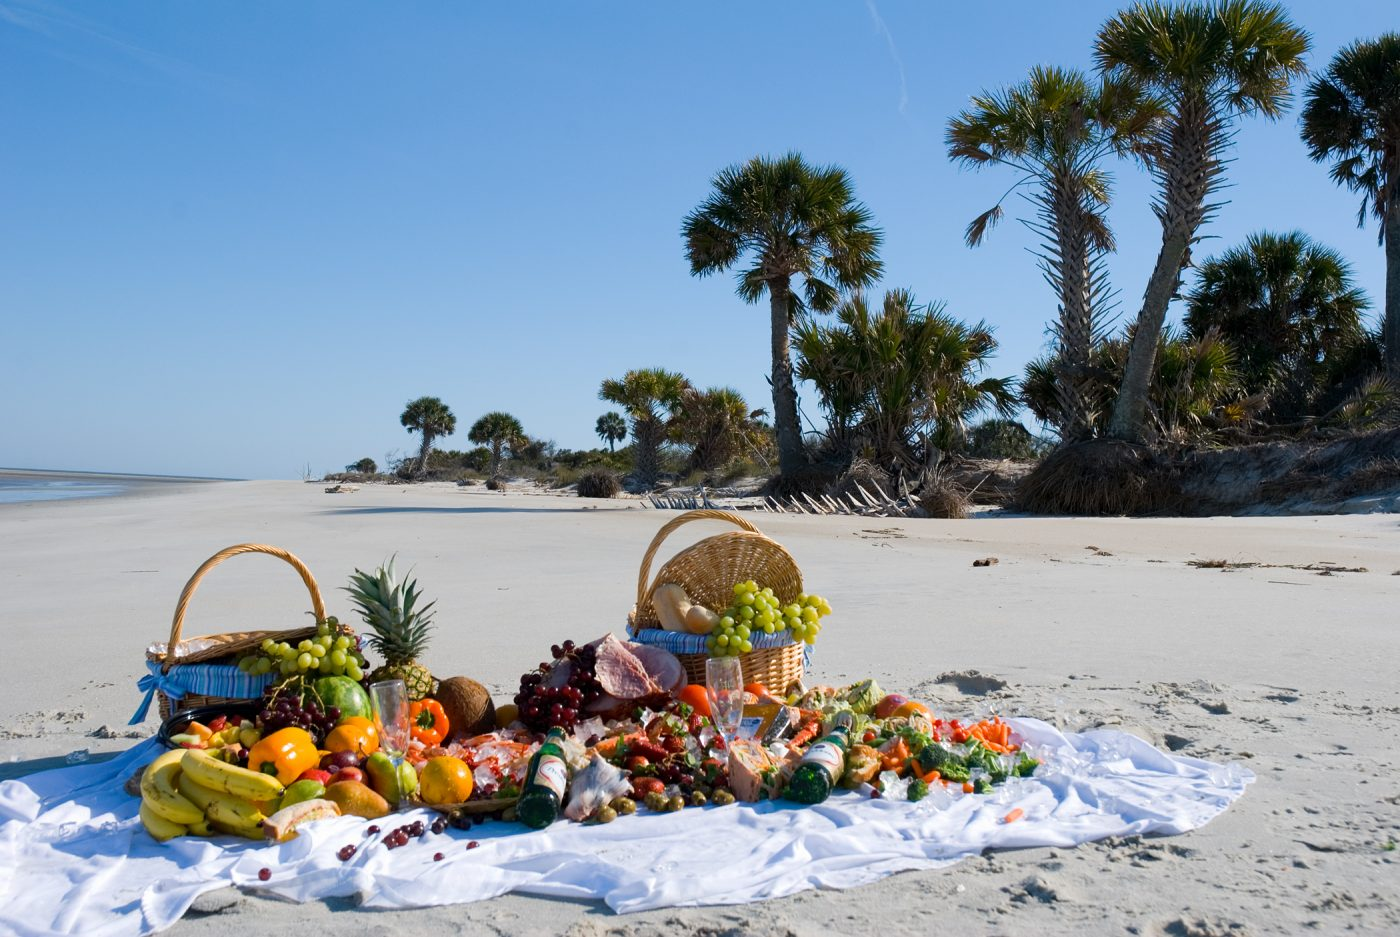 picnic-beach-picnic-1324493, freeimages, by Roger Kirby